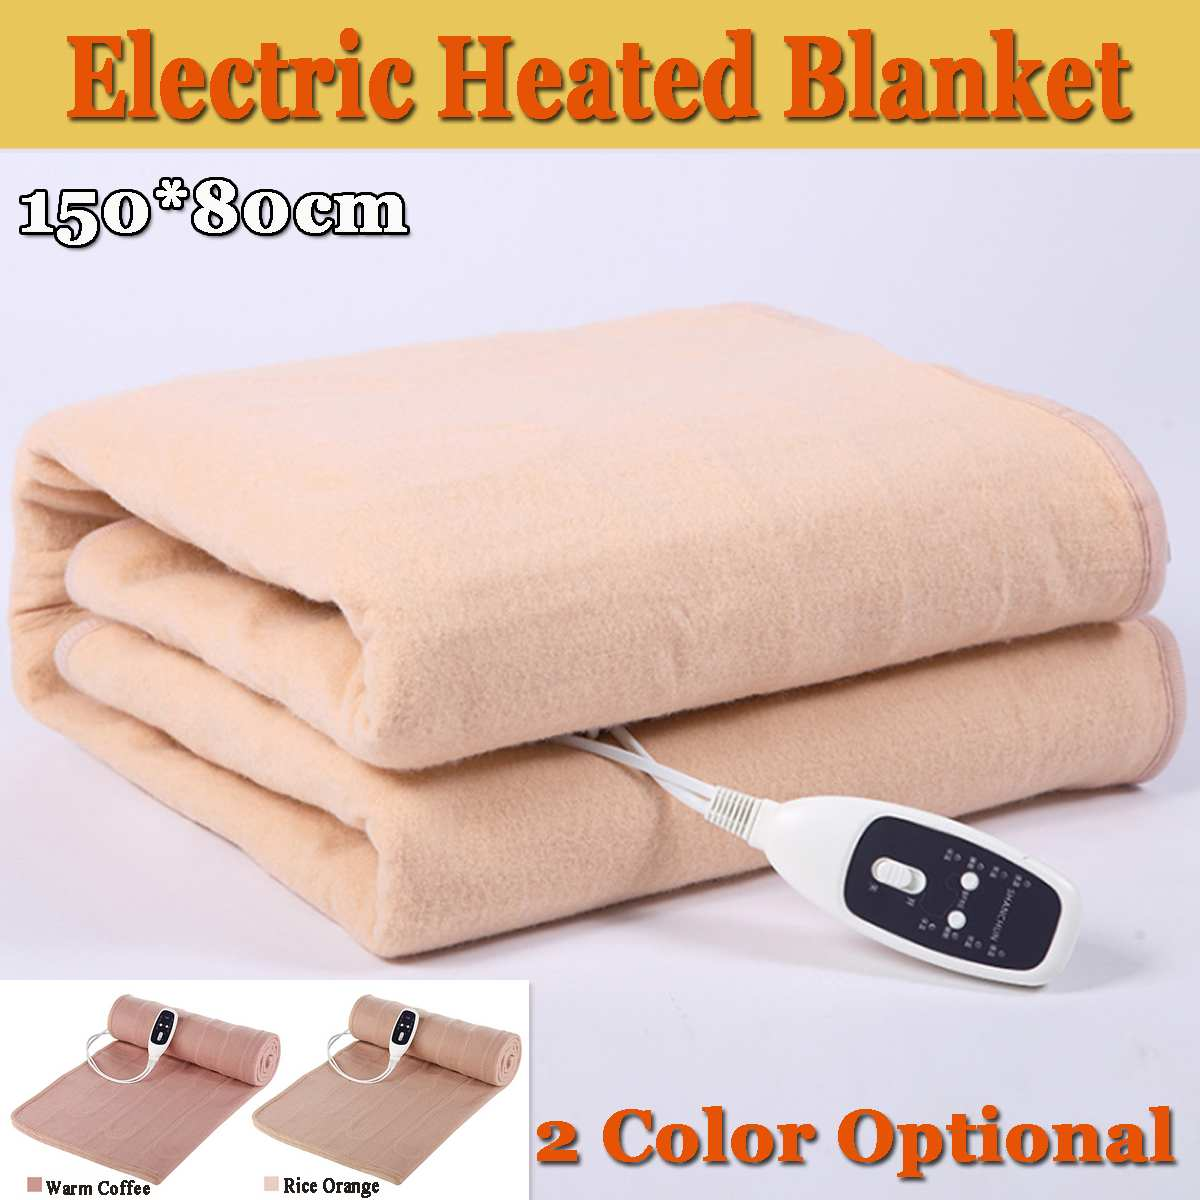 Electric Heater Blanket 150x80cm Waterproof Safety Electric Heated Car Blanket Warm Winter Blanket Cover Heater 220V Home Truck